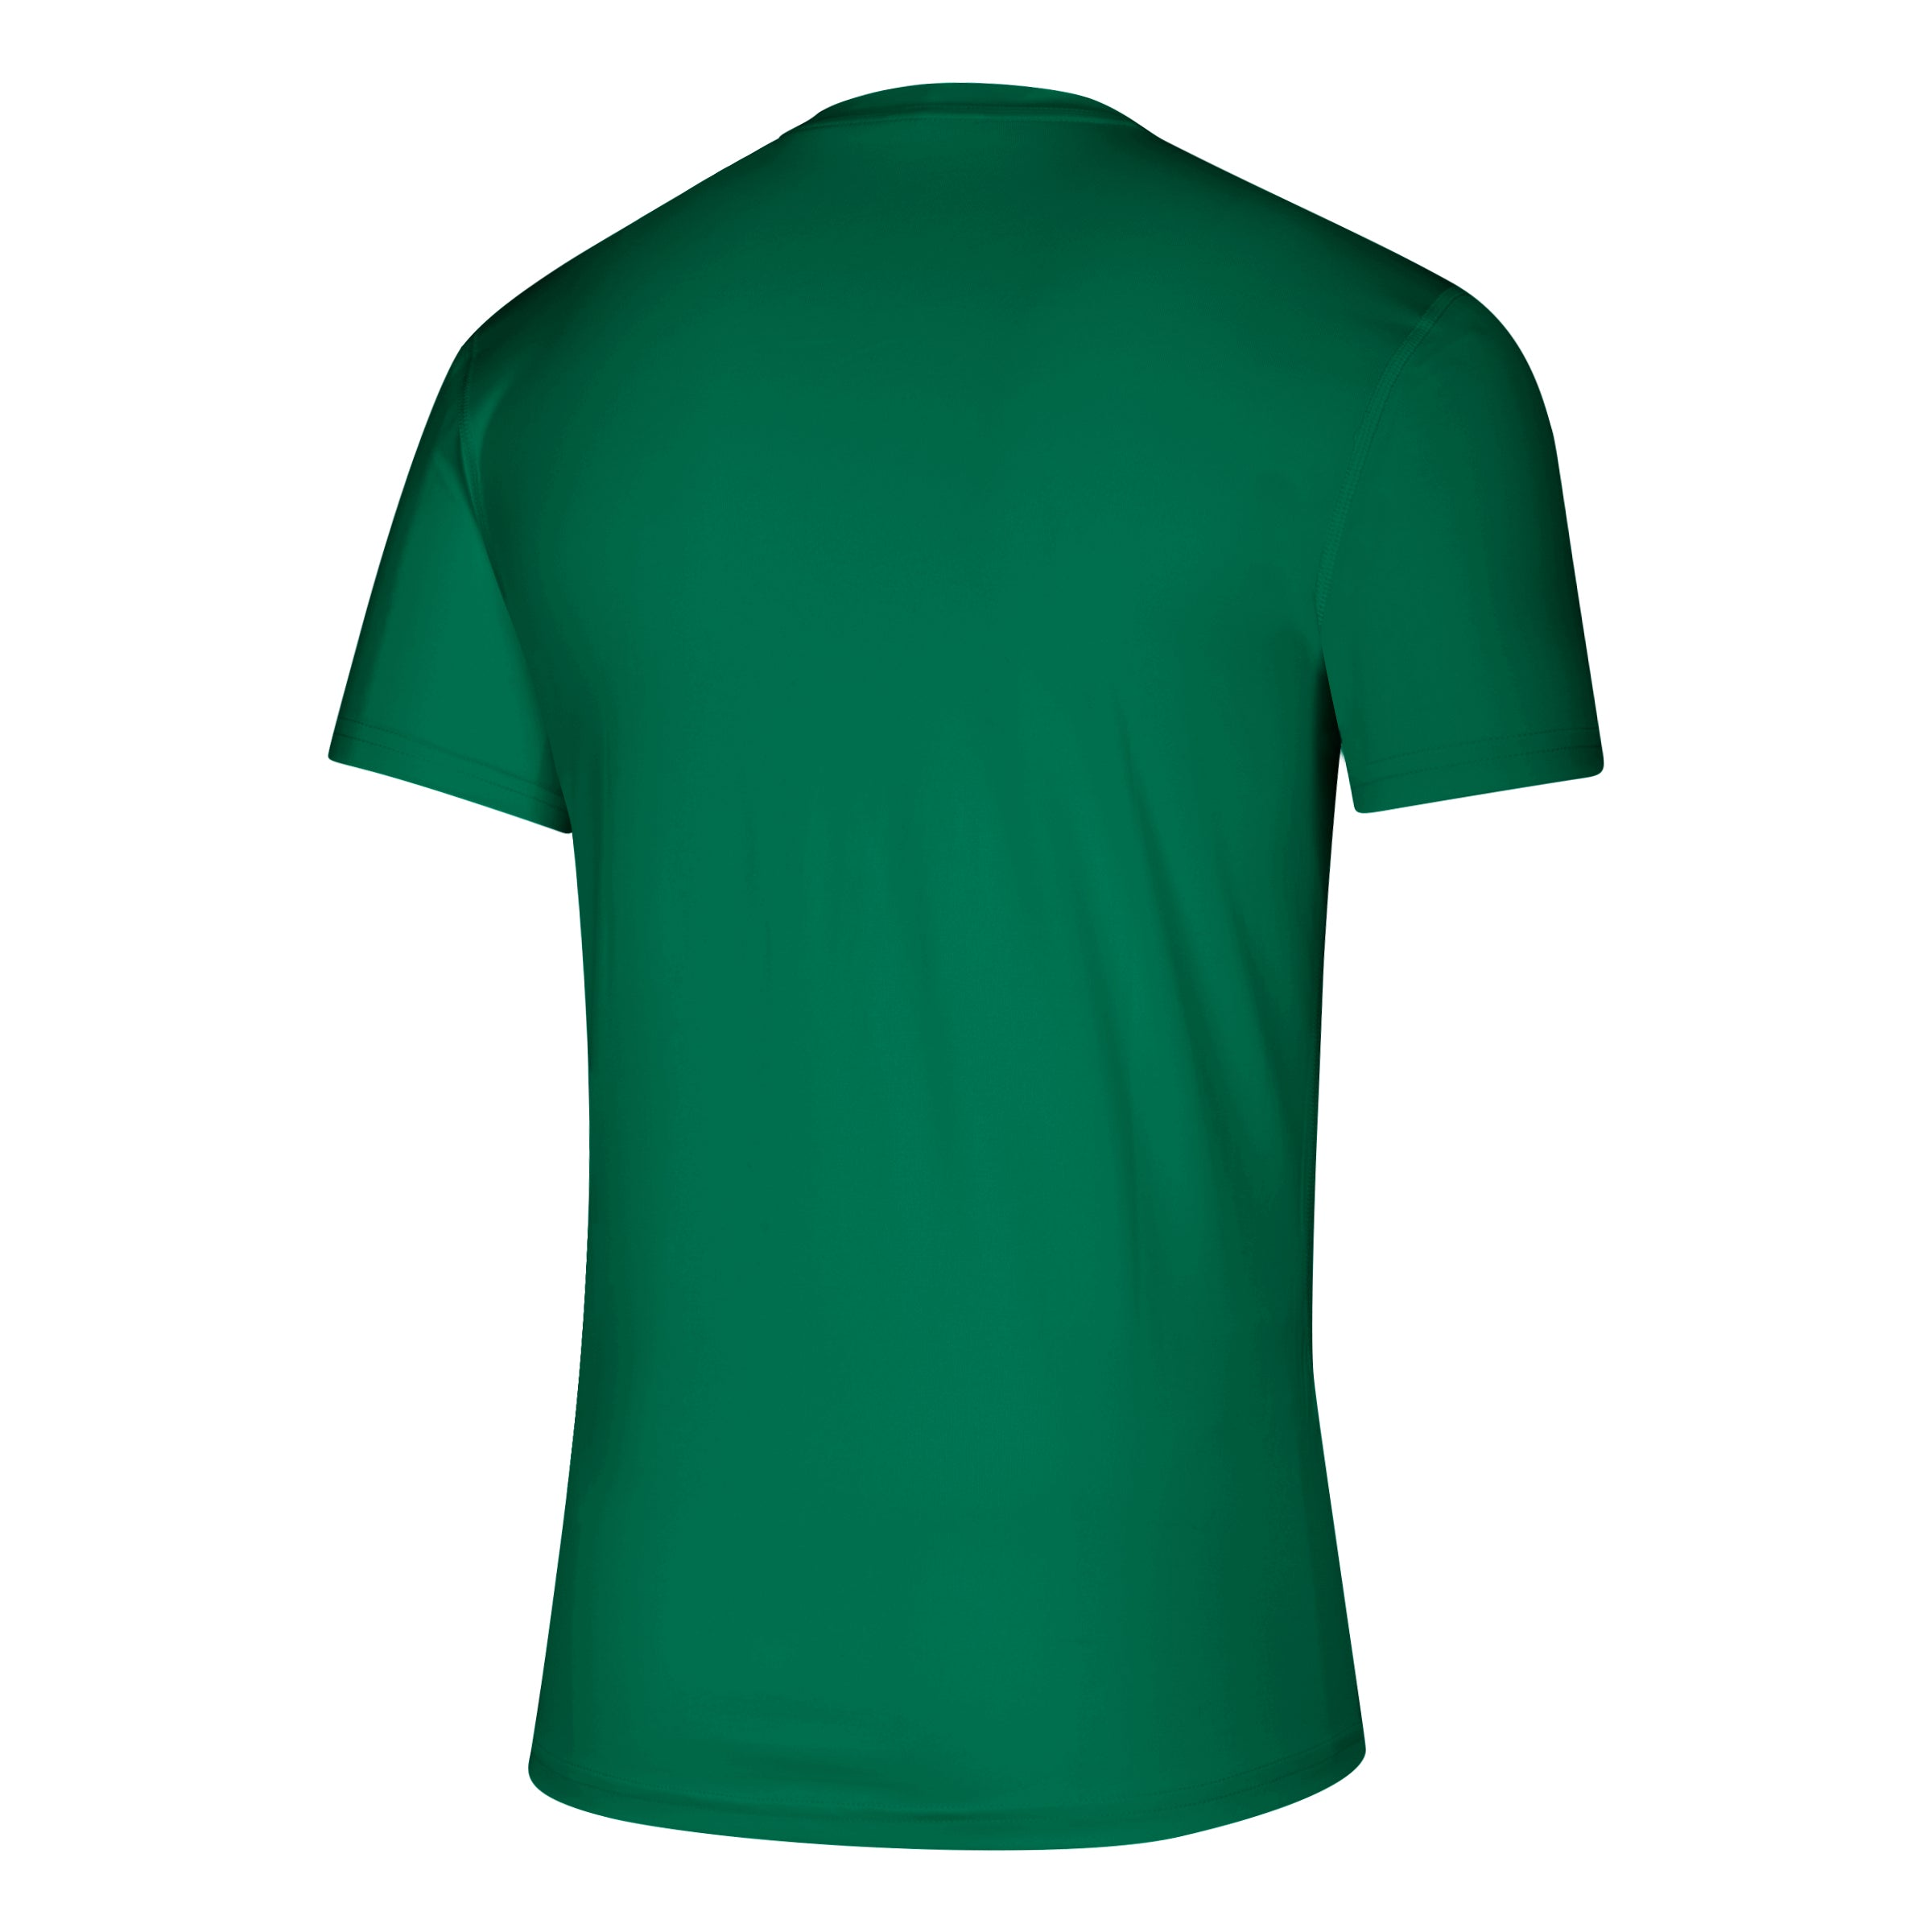 Maple Leafs Adidas St. Pats Men's Team Creator Tee